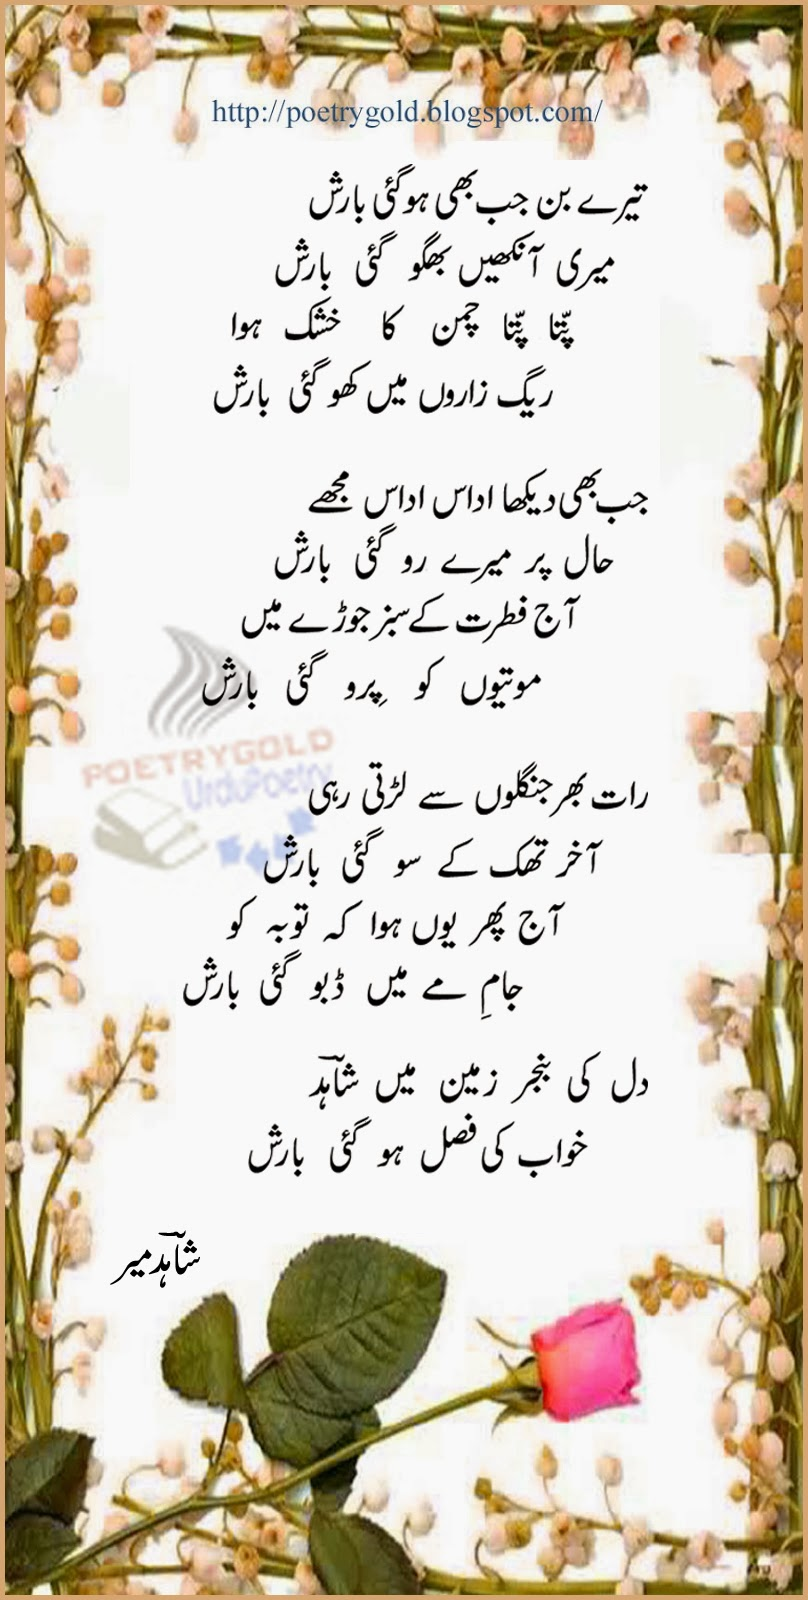 barish poetry-barsaat shayari